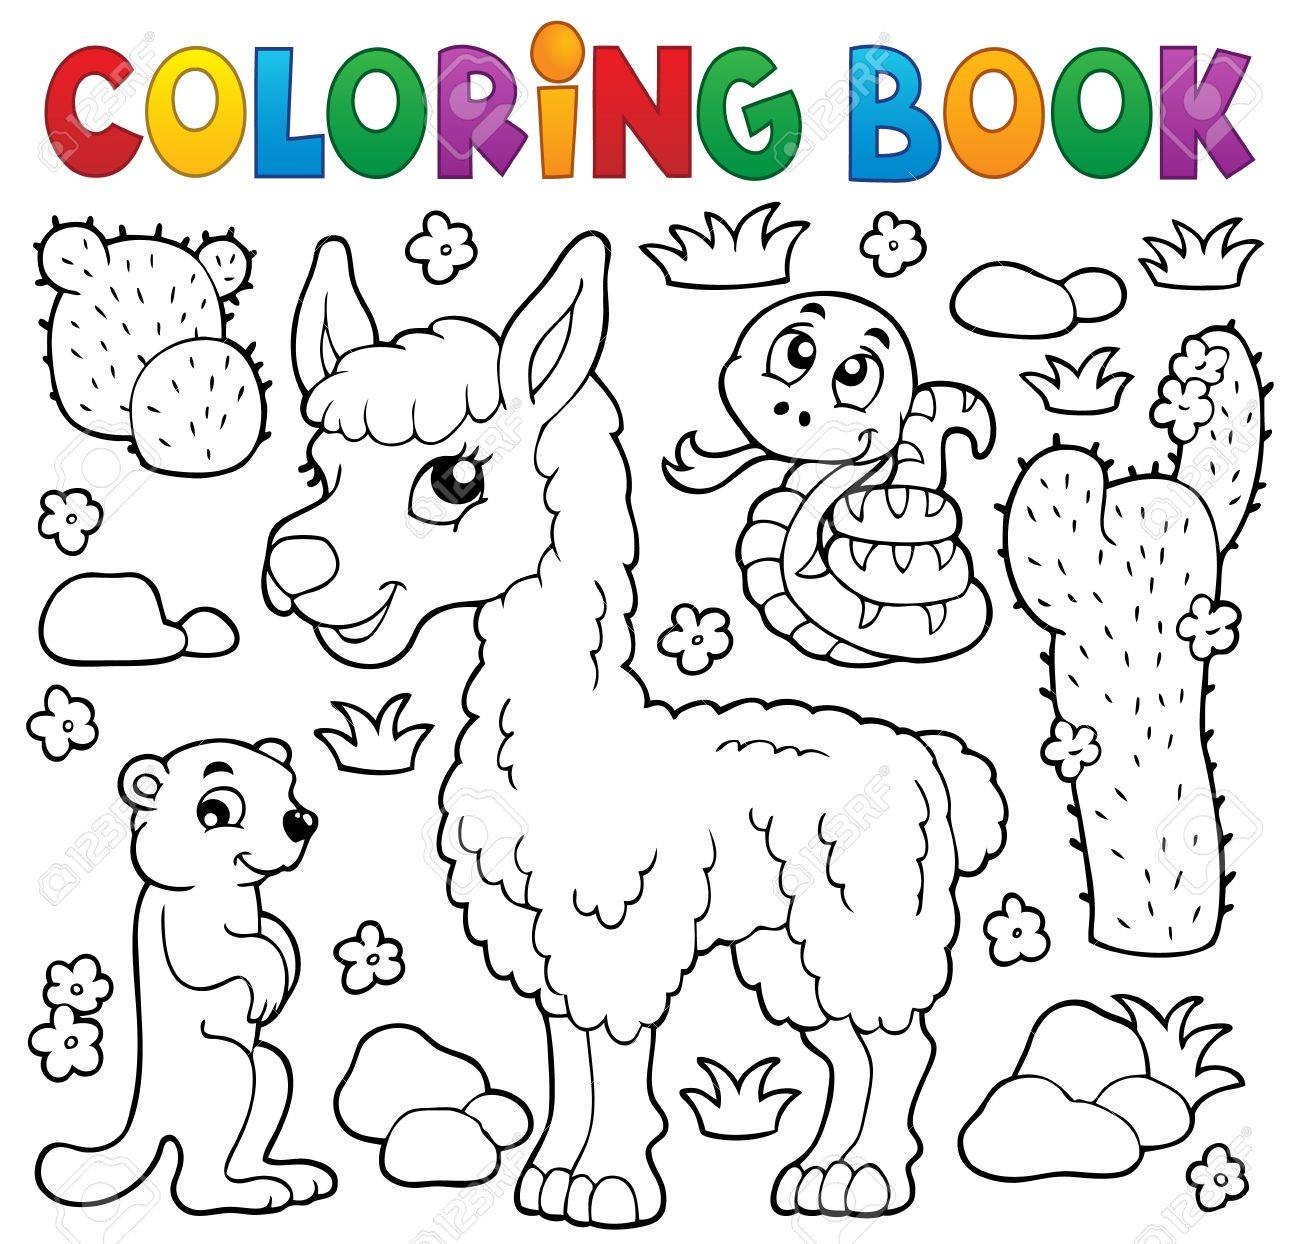 Coloring Book With Cute Animals Illustration Stock Vector